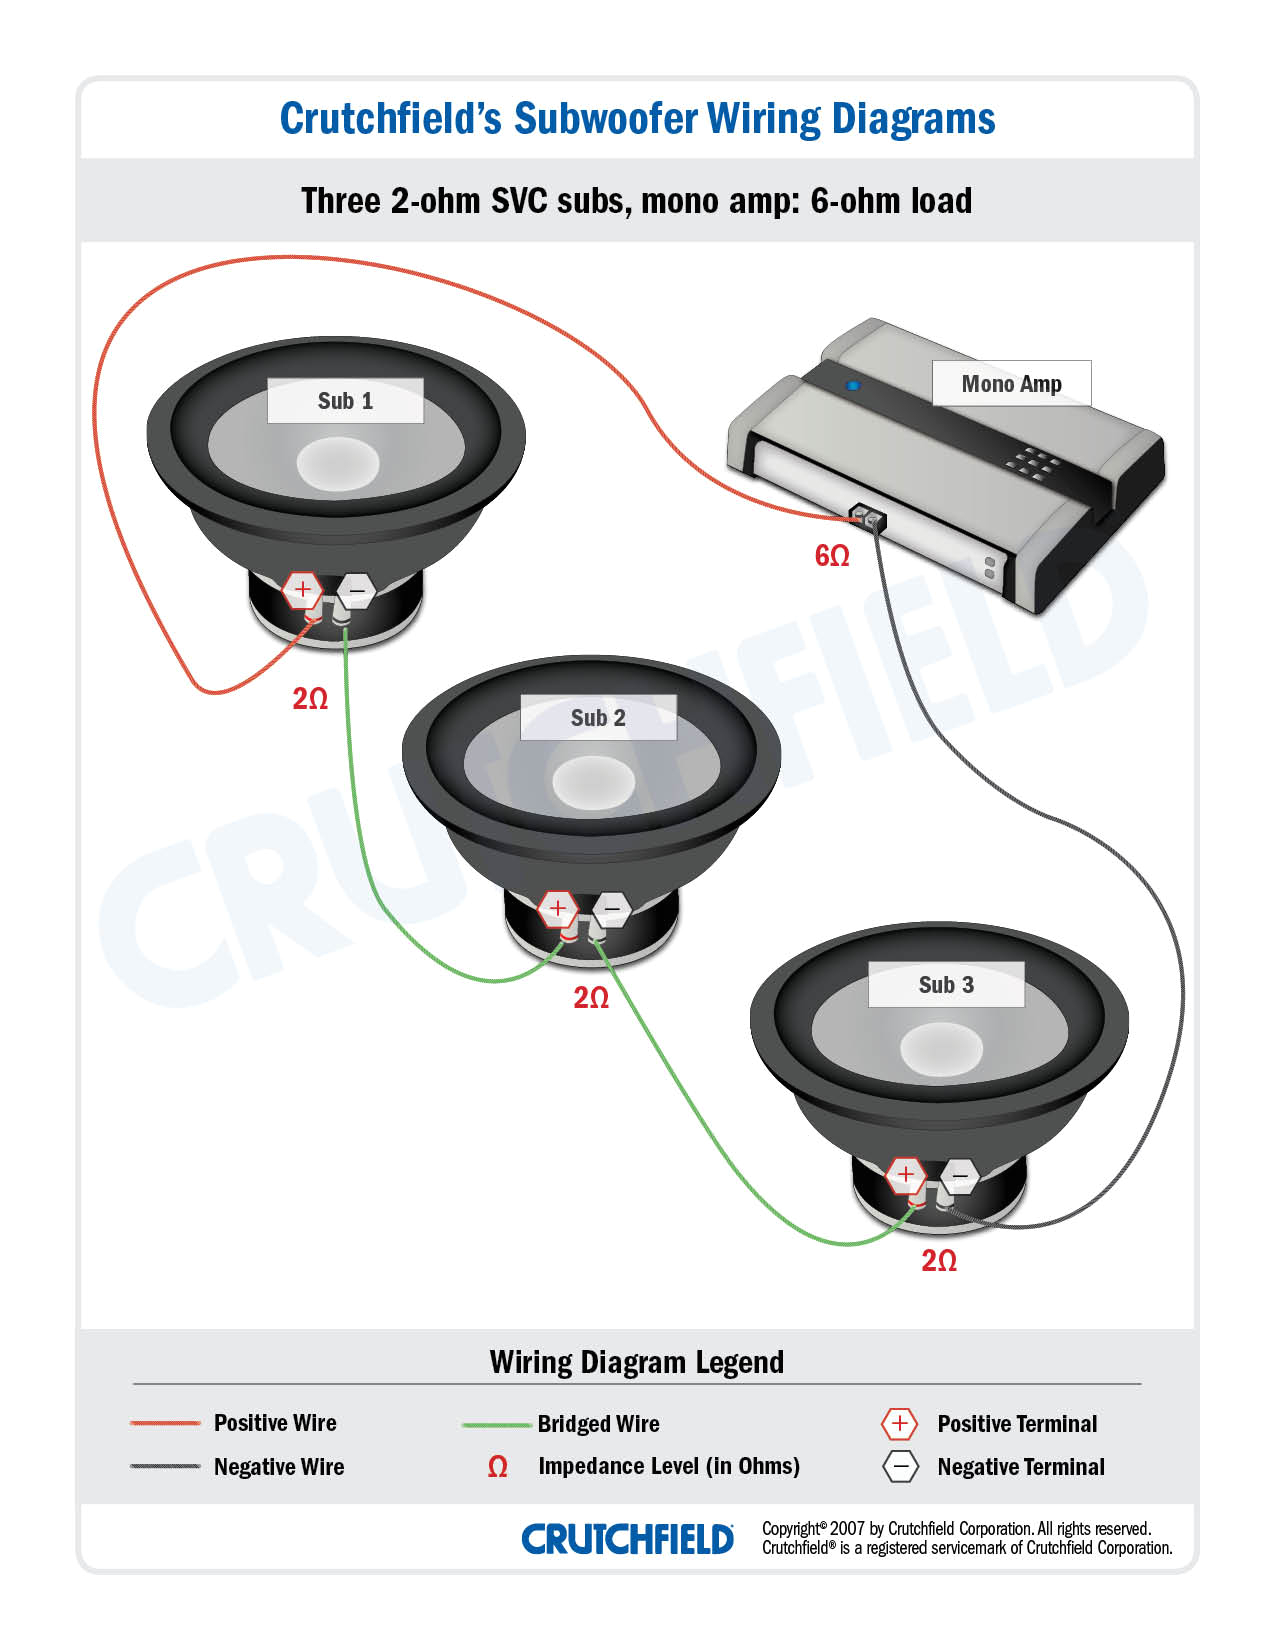 in your case on the diagram captions change the 2s to 4s and the subwoofer wiring